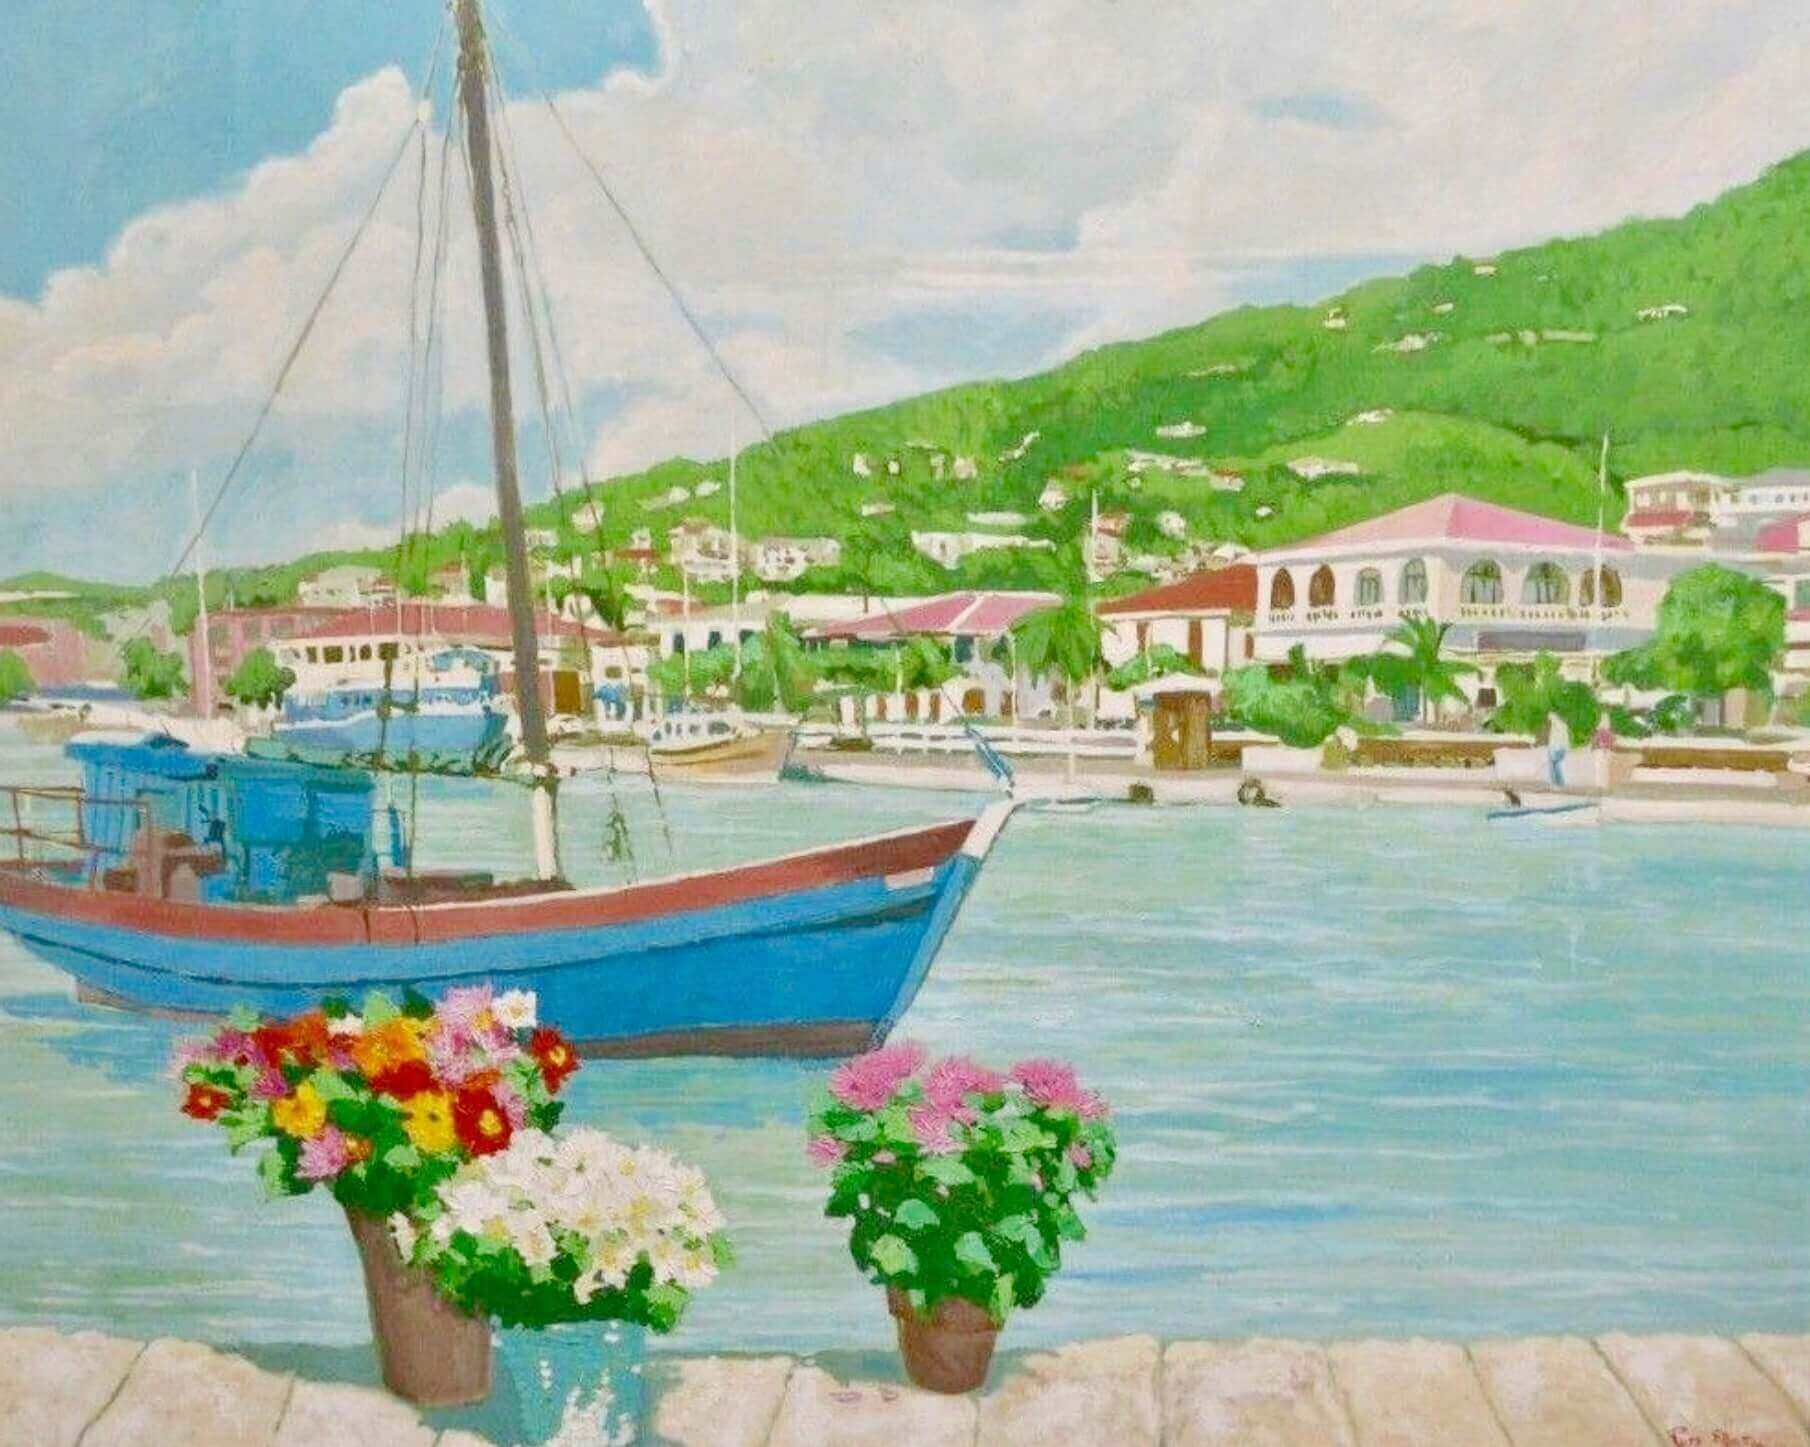 Beautiful painting by Russ Elliott of St. Thomas.